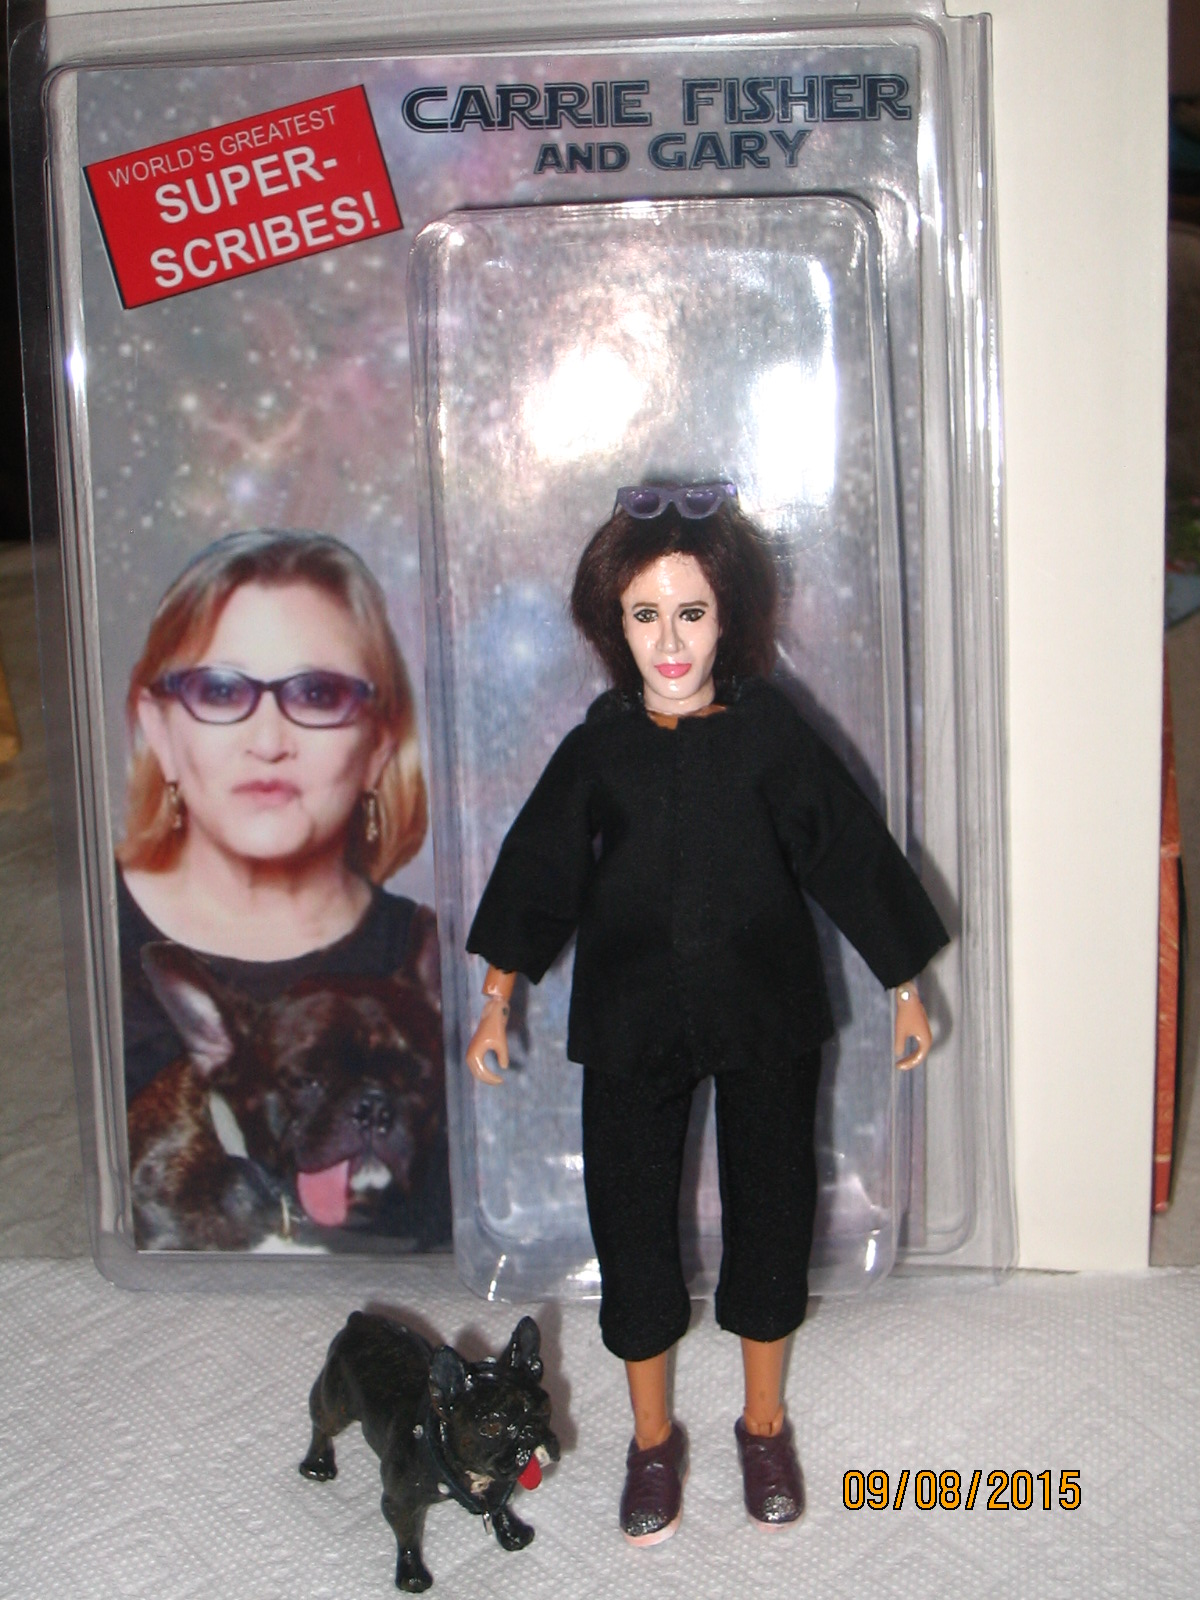 carrie fisher gary version 3.0